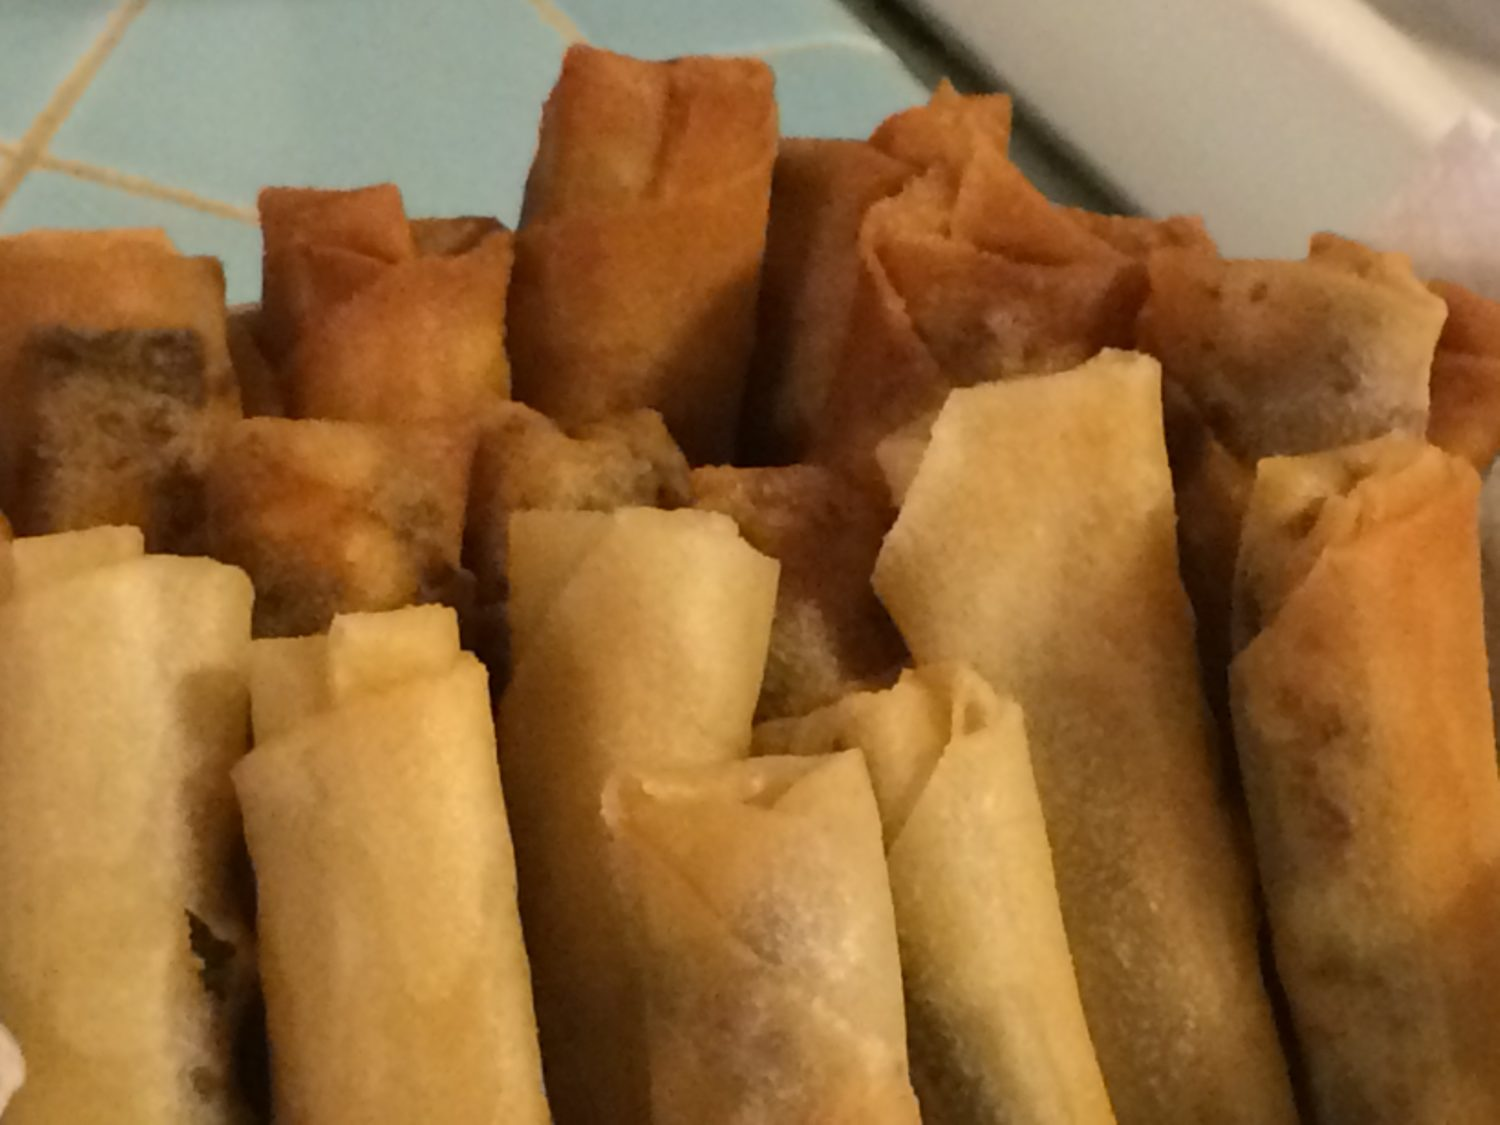 Eggrolls! Yum! All ready to eat with some sweet and sour sauce and hot cooked rice! These aren't authentic lumpia but they still taste good!